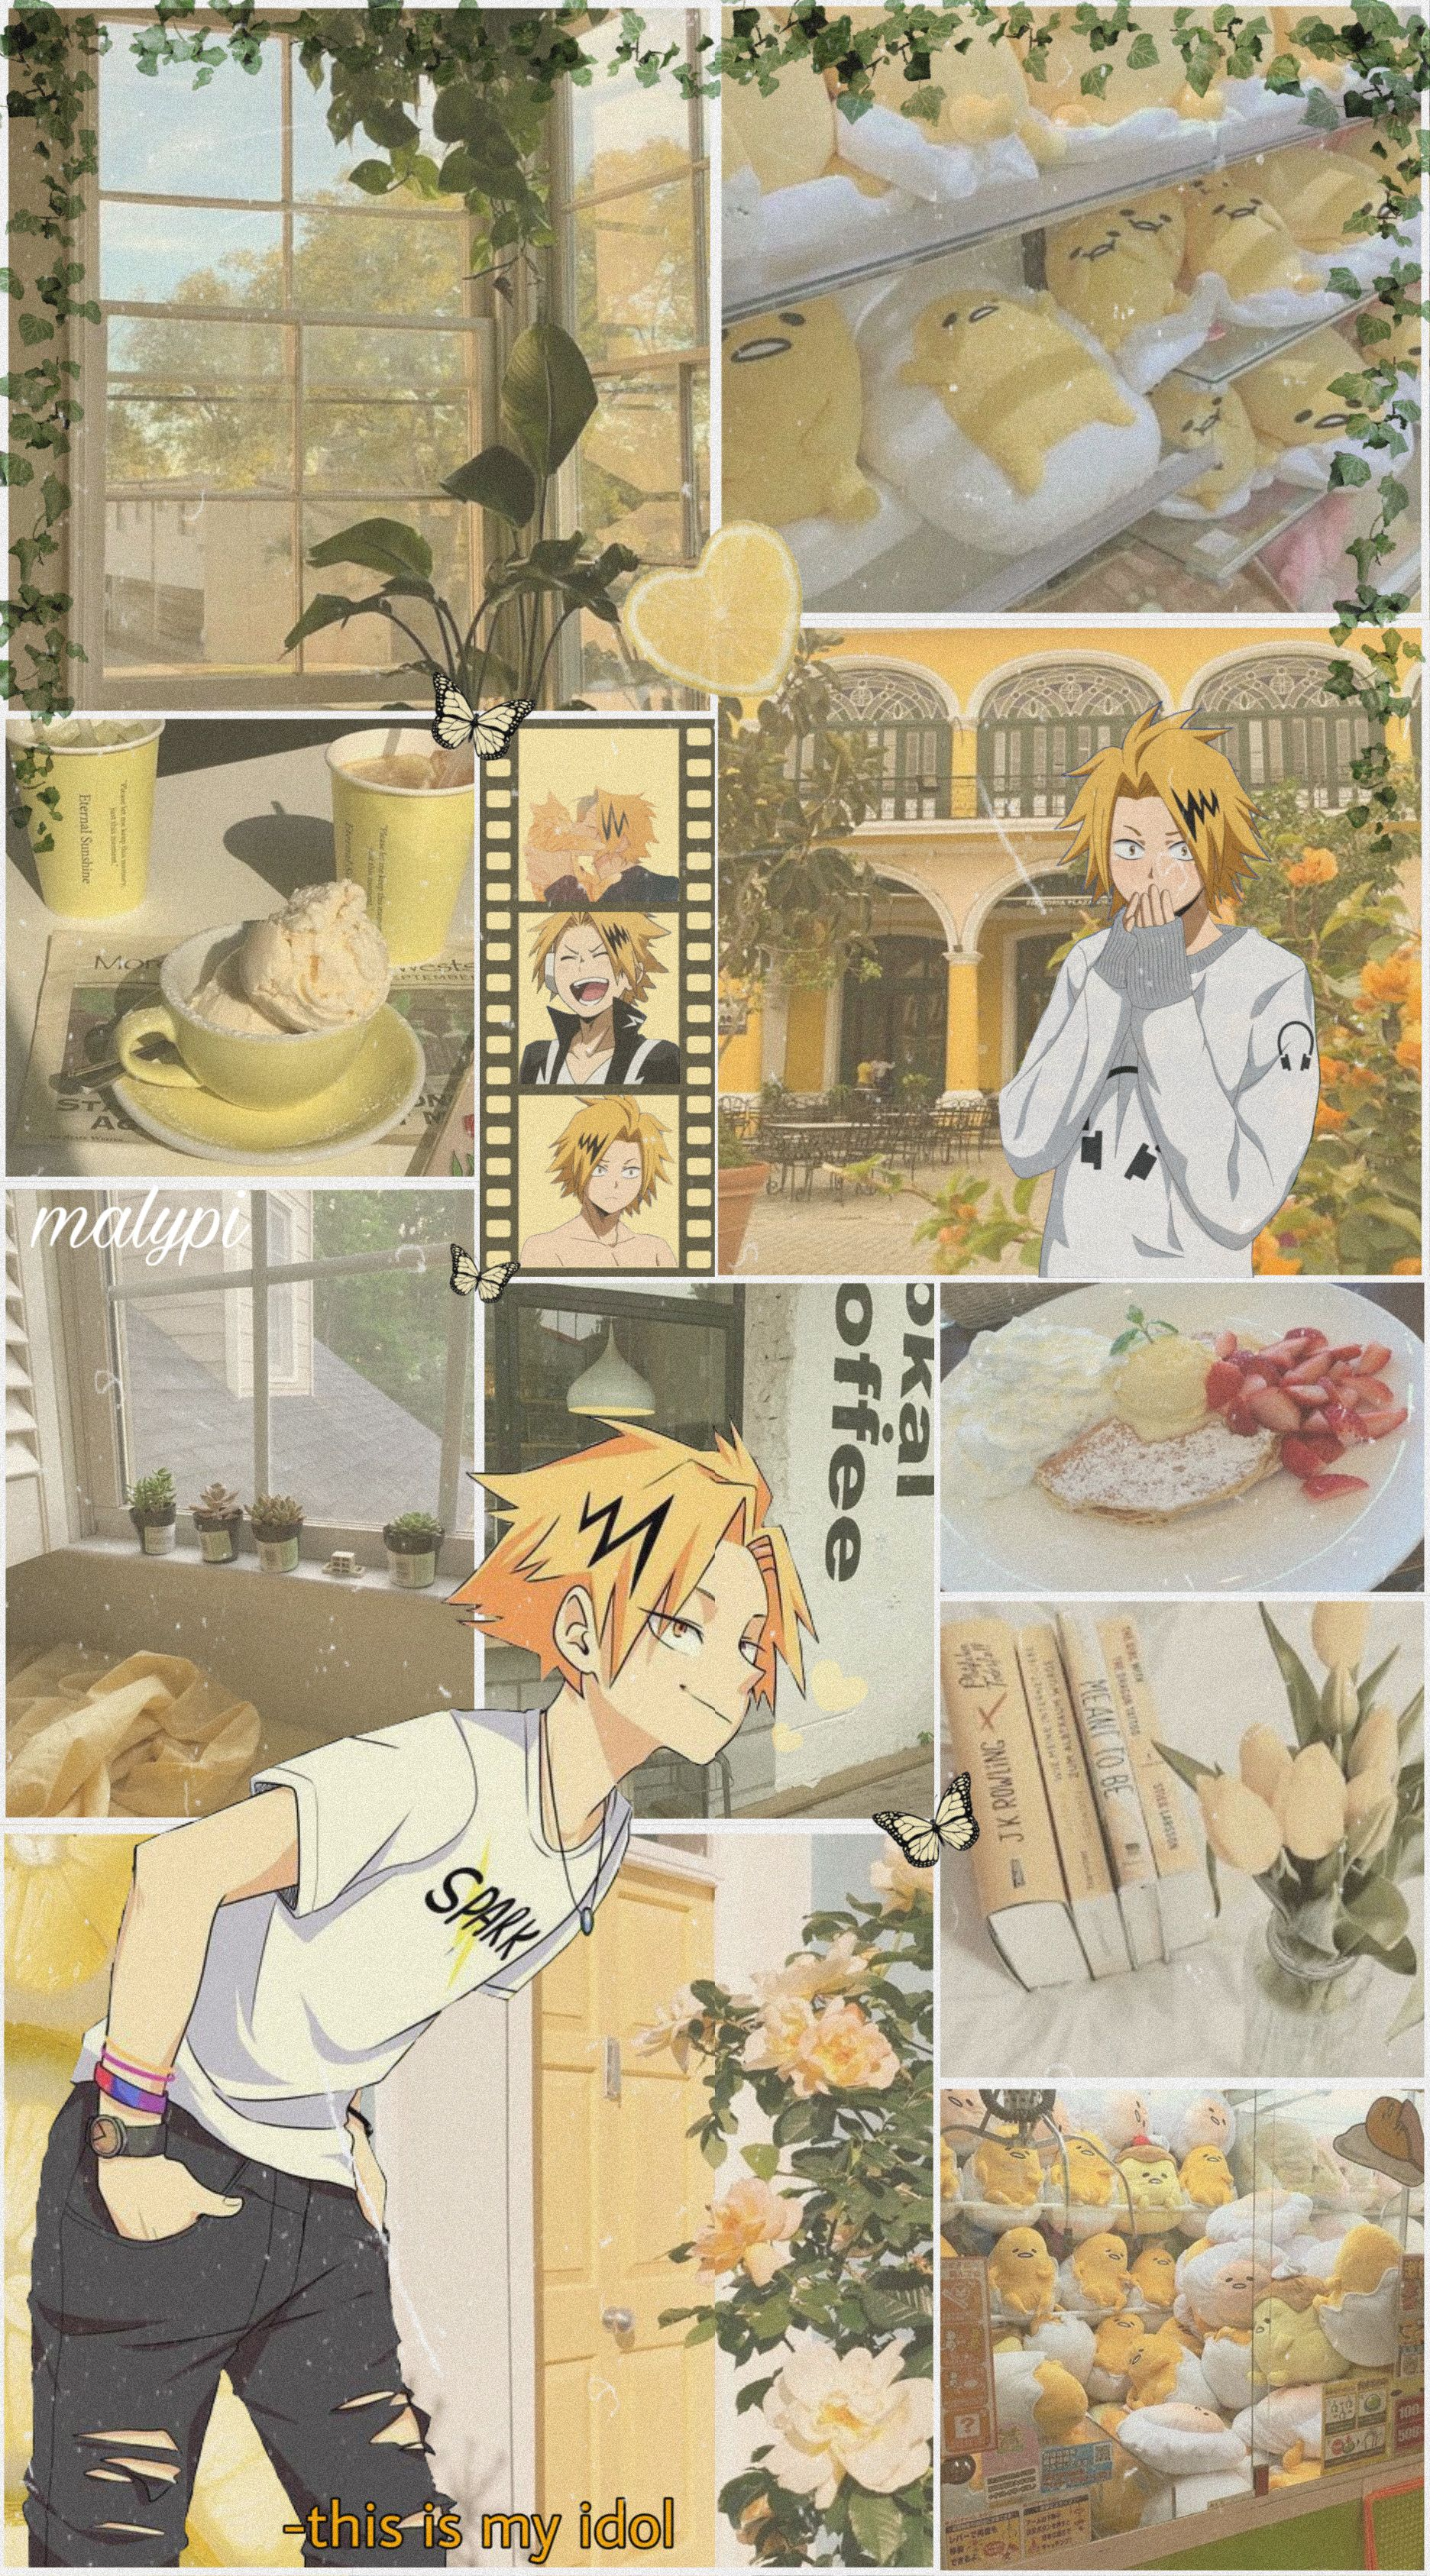 LMAO, okay so i made this NEW and improved version of the last denki wallpaper i made! i feel like this one is a LOT BETTER LMAO. considering i hated the previous one lol. i hope you all like it. it is a soft yellow aesthetic denki kaminari wallpaper i made <333 (dm me for requests! im taking as many as i can before school starts!) #denki #denkikaminari #kaminari #kaminaridenki #denkiwallpaper #kaminariwallpaper #denkikaminariwallpaper #mha #bnha #bnhawallpaper #mhawallpaper #myheroacademia #bokunoheroacademia #myheroacademiawallpaper #bokunoheroacademiawallpaper #anime #weeb #animewallpaper #animeaesthetic #yellowaesthetic #aestheticanime #aestheticanimewallpaper #wallpaper #animeaestheticwallpaper #bakusquad  #freetoedit